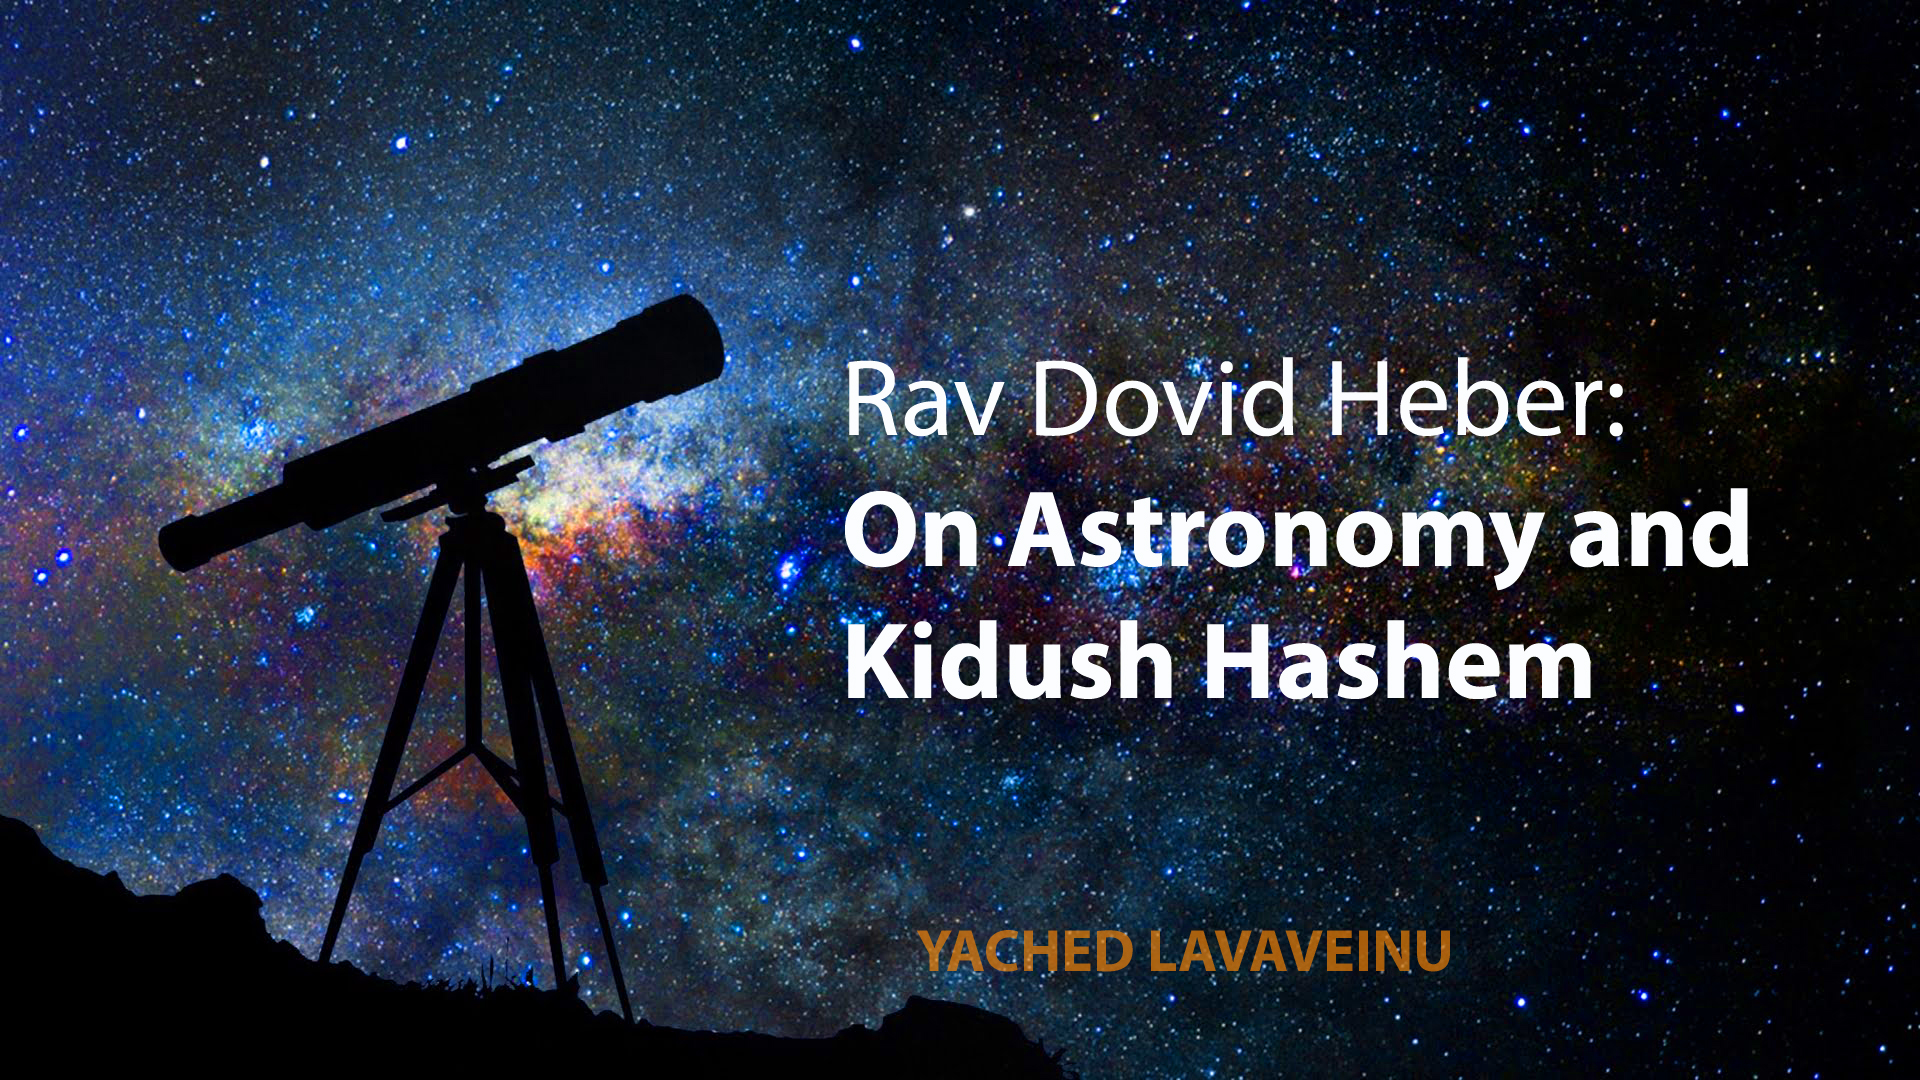 Rav Dovid Heber: On Astronomy and Kidush Hashem